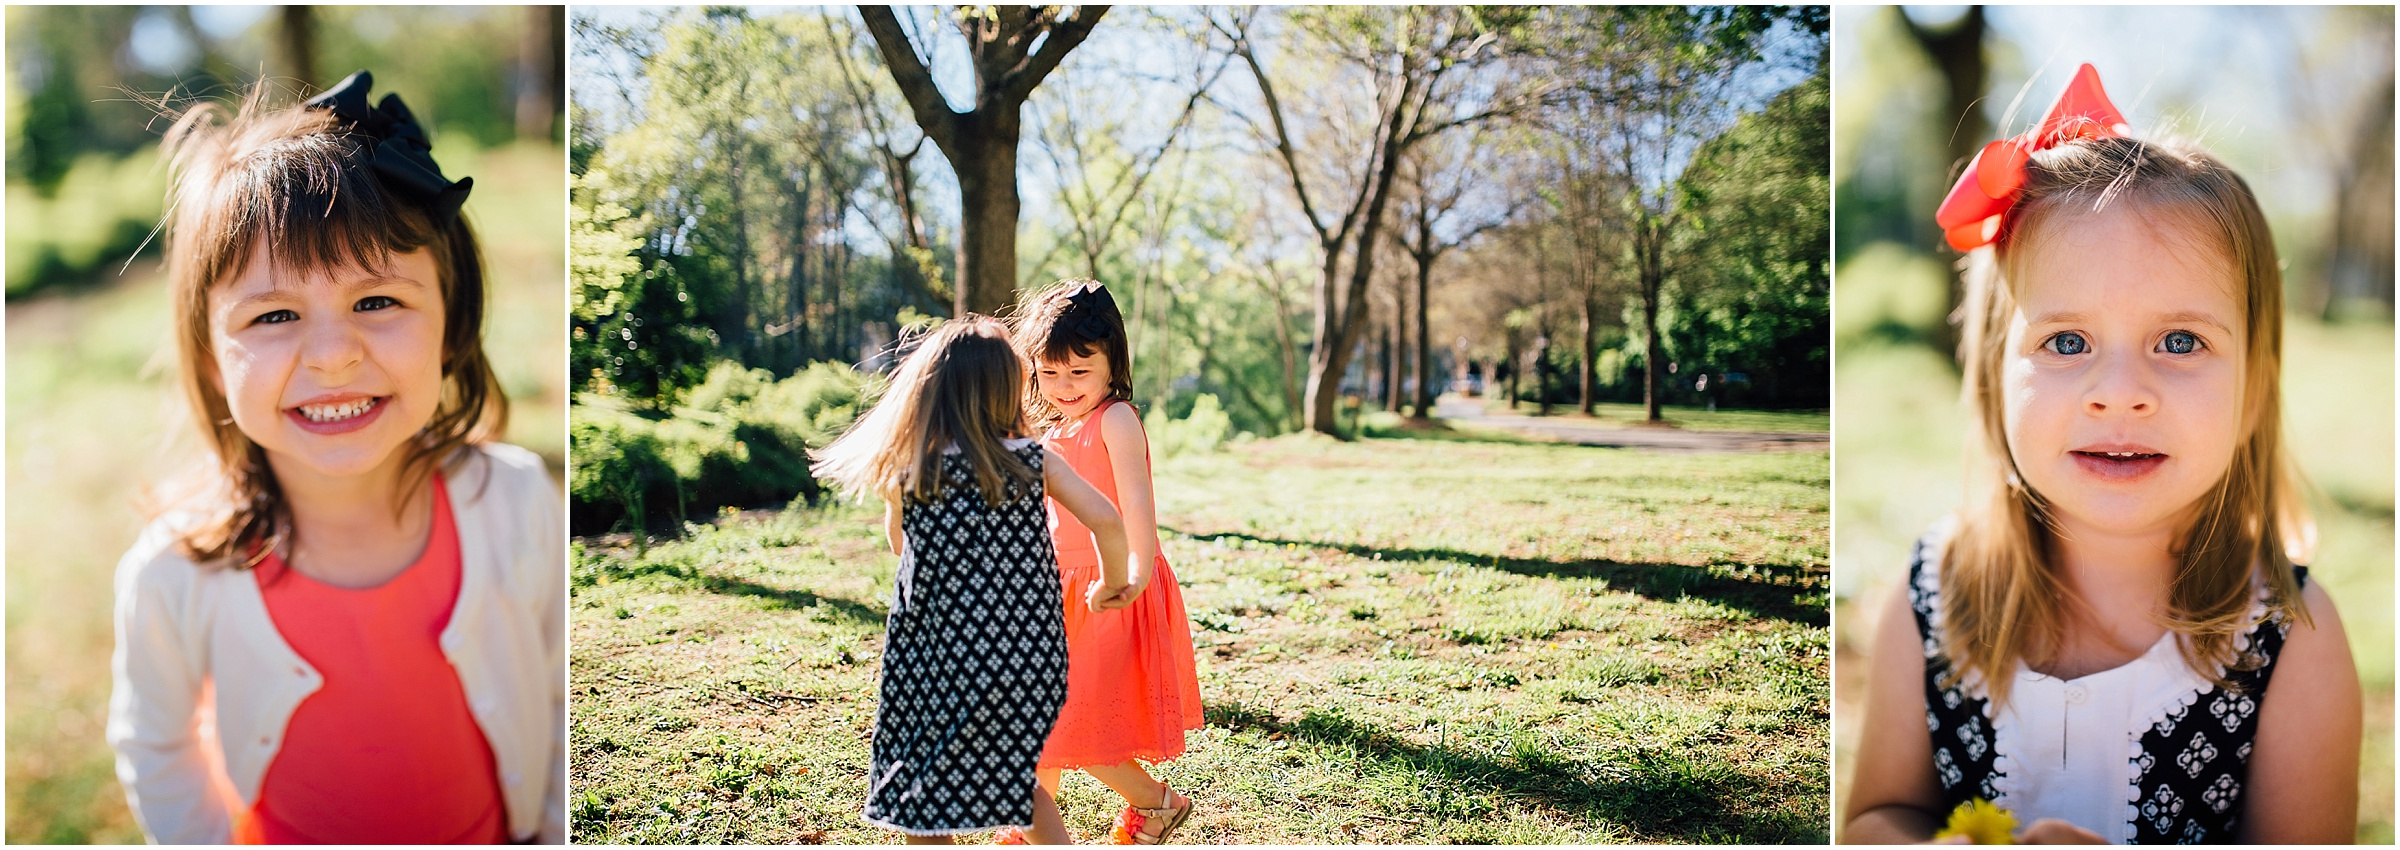 lifestyle family photography by Emily Lapish Photography in Chattanooga TN_0029